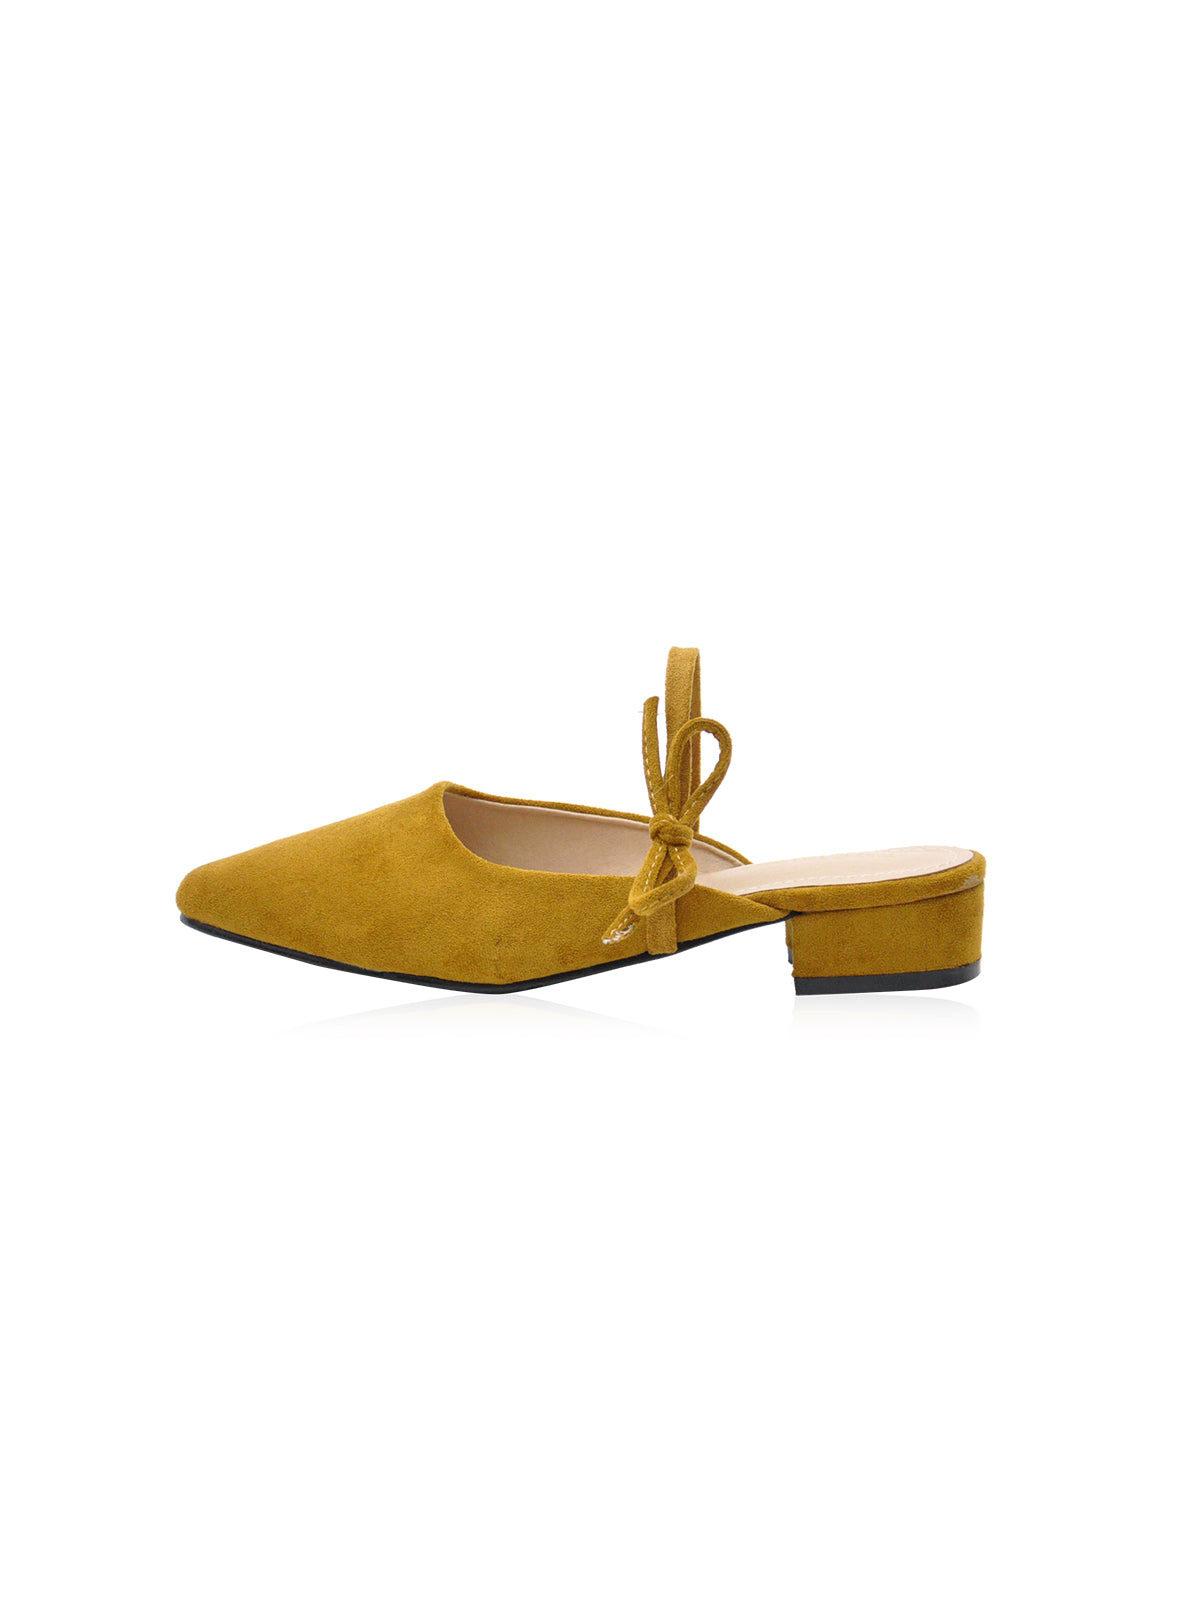 Caroline Mules in Mustard Yellow ( Reject )